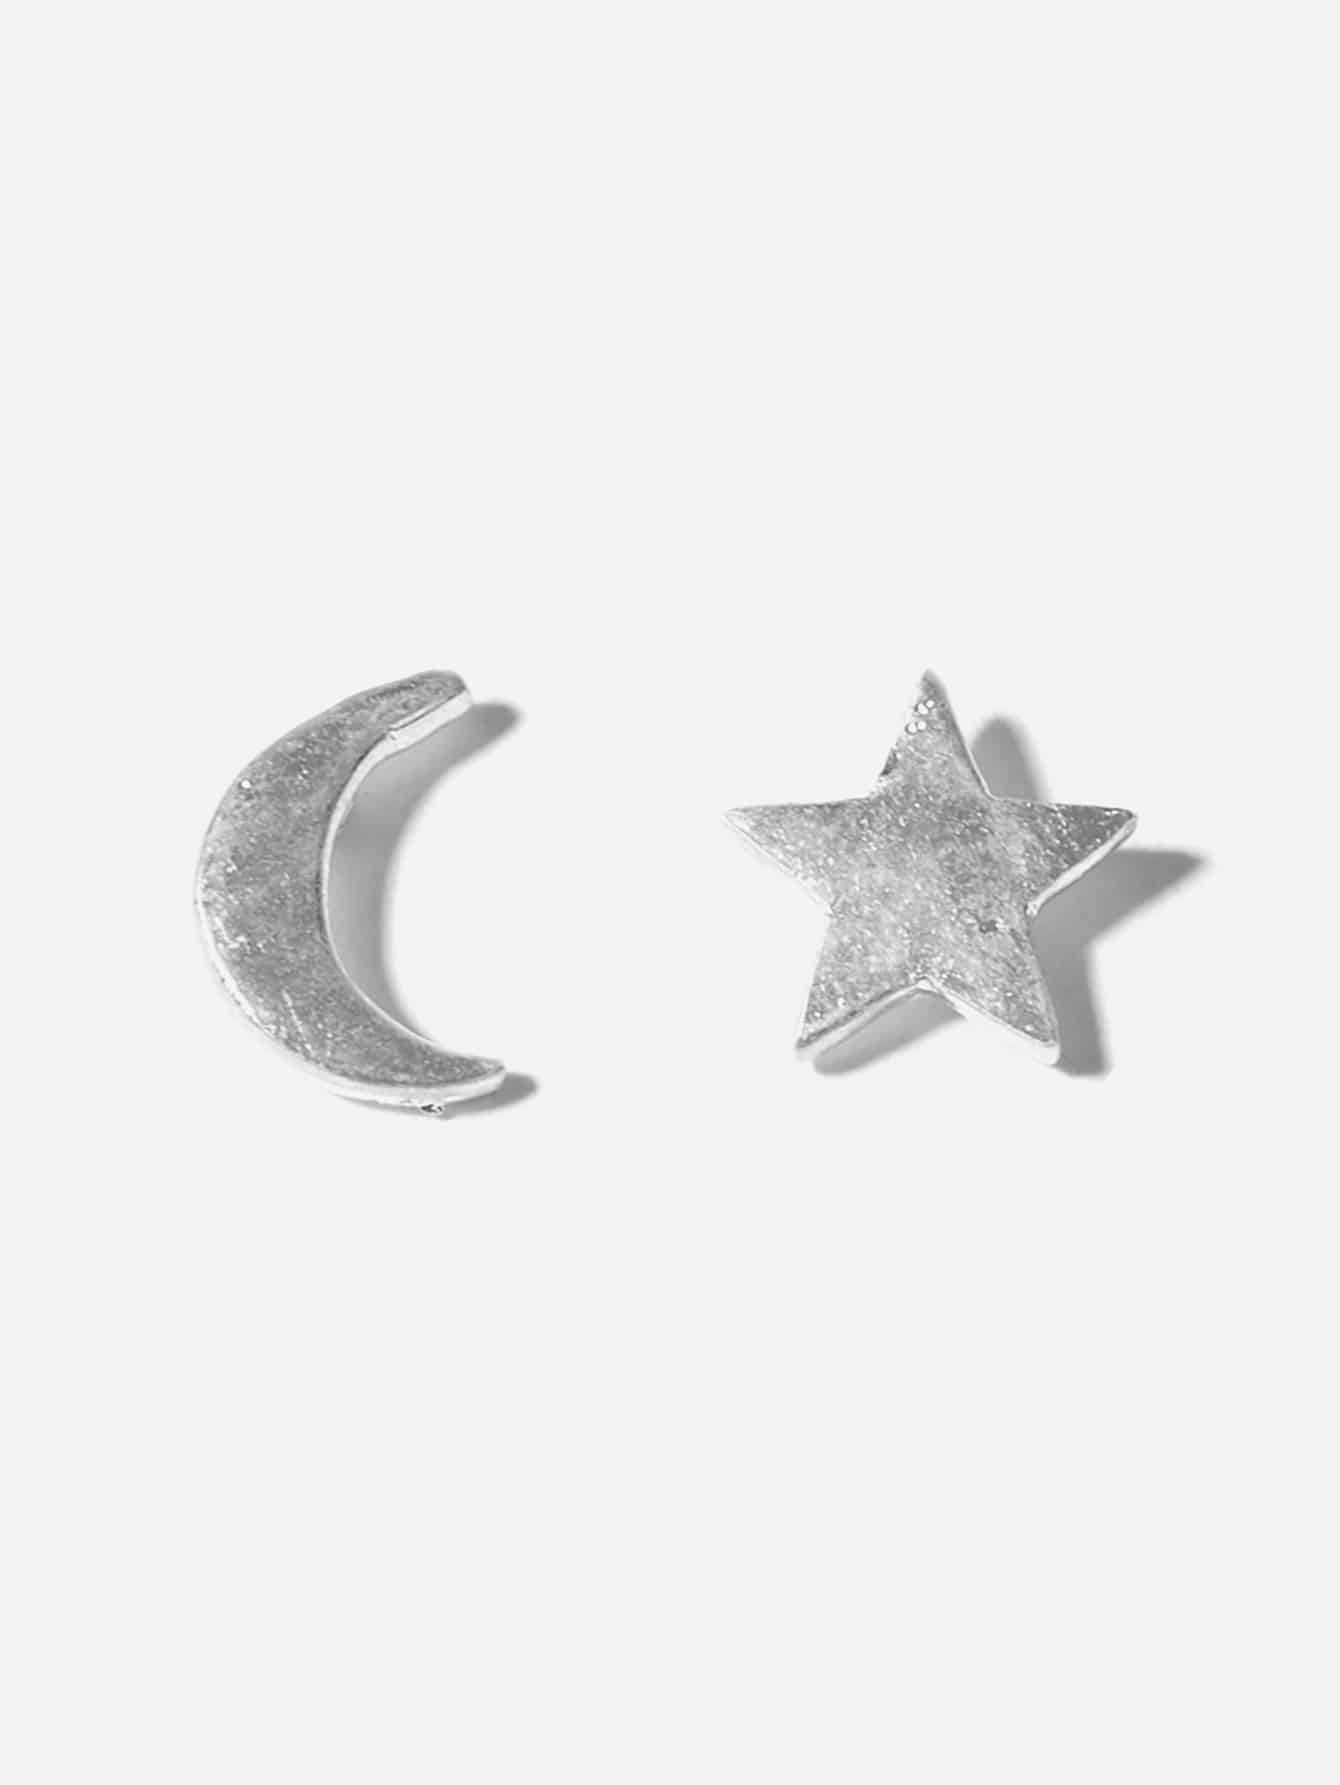 Silver Mismatched Moon & Star 1 Pair Stud Earrings